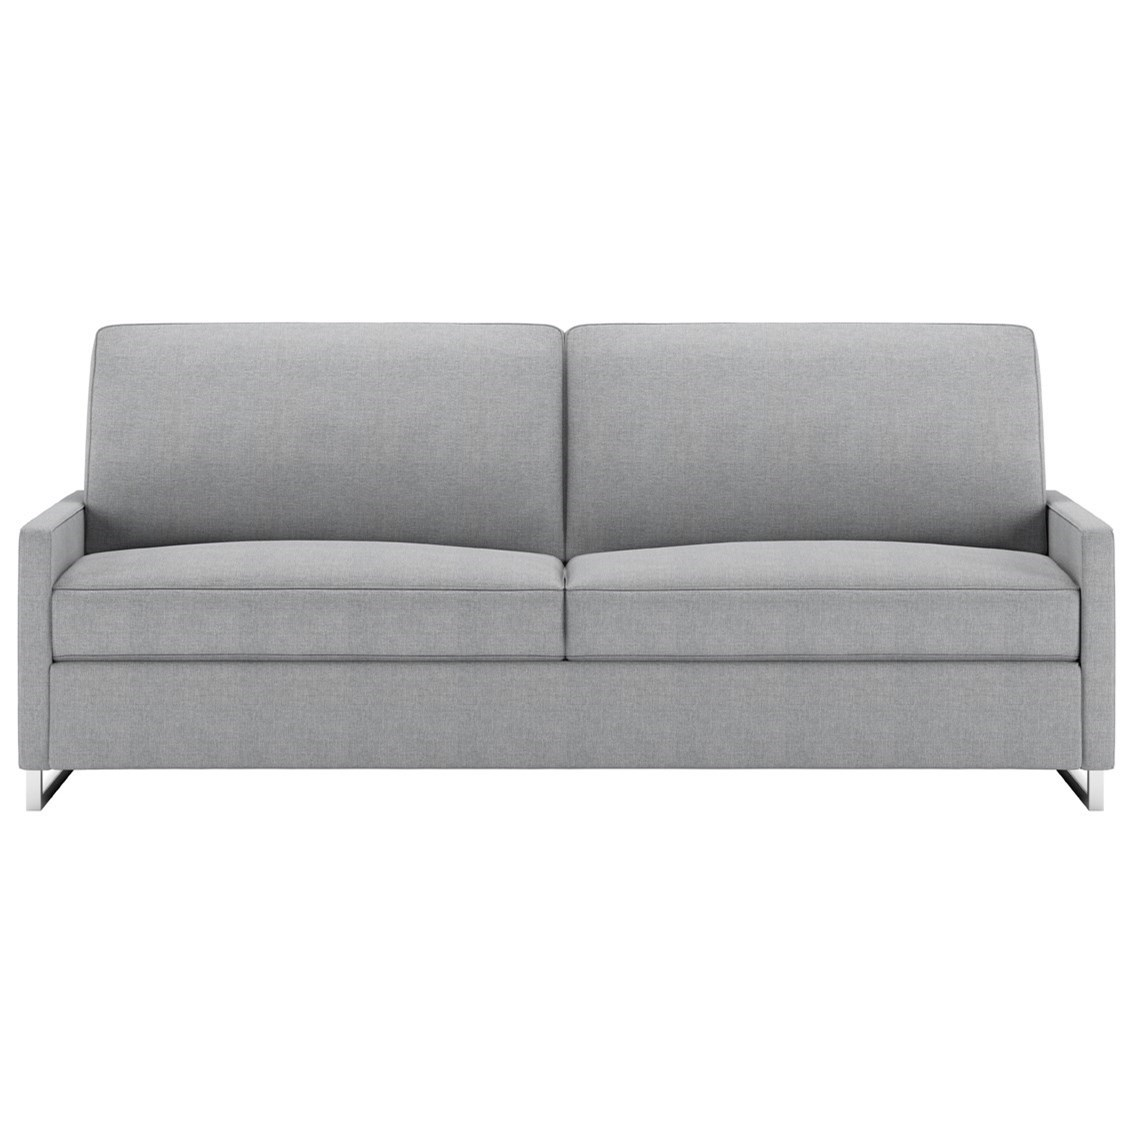 Brandt Sleeper Sofa by American Leather at Baer's Furniture